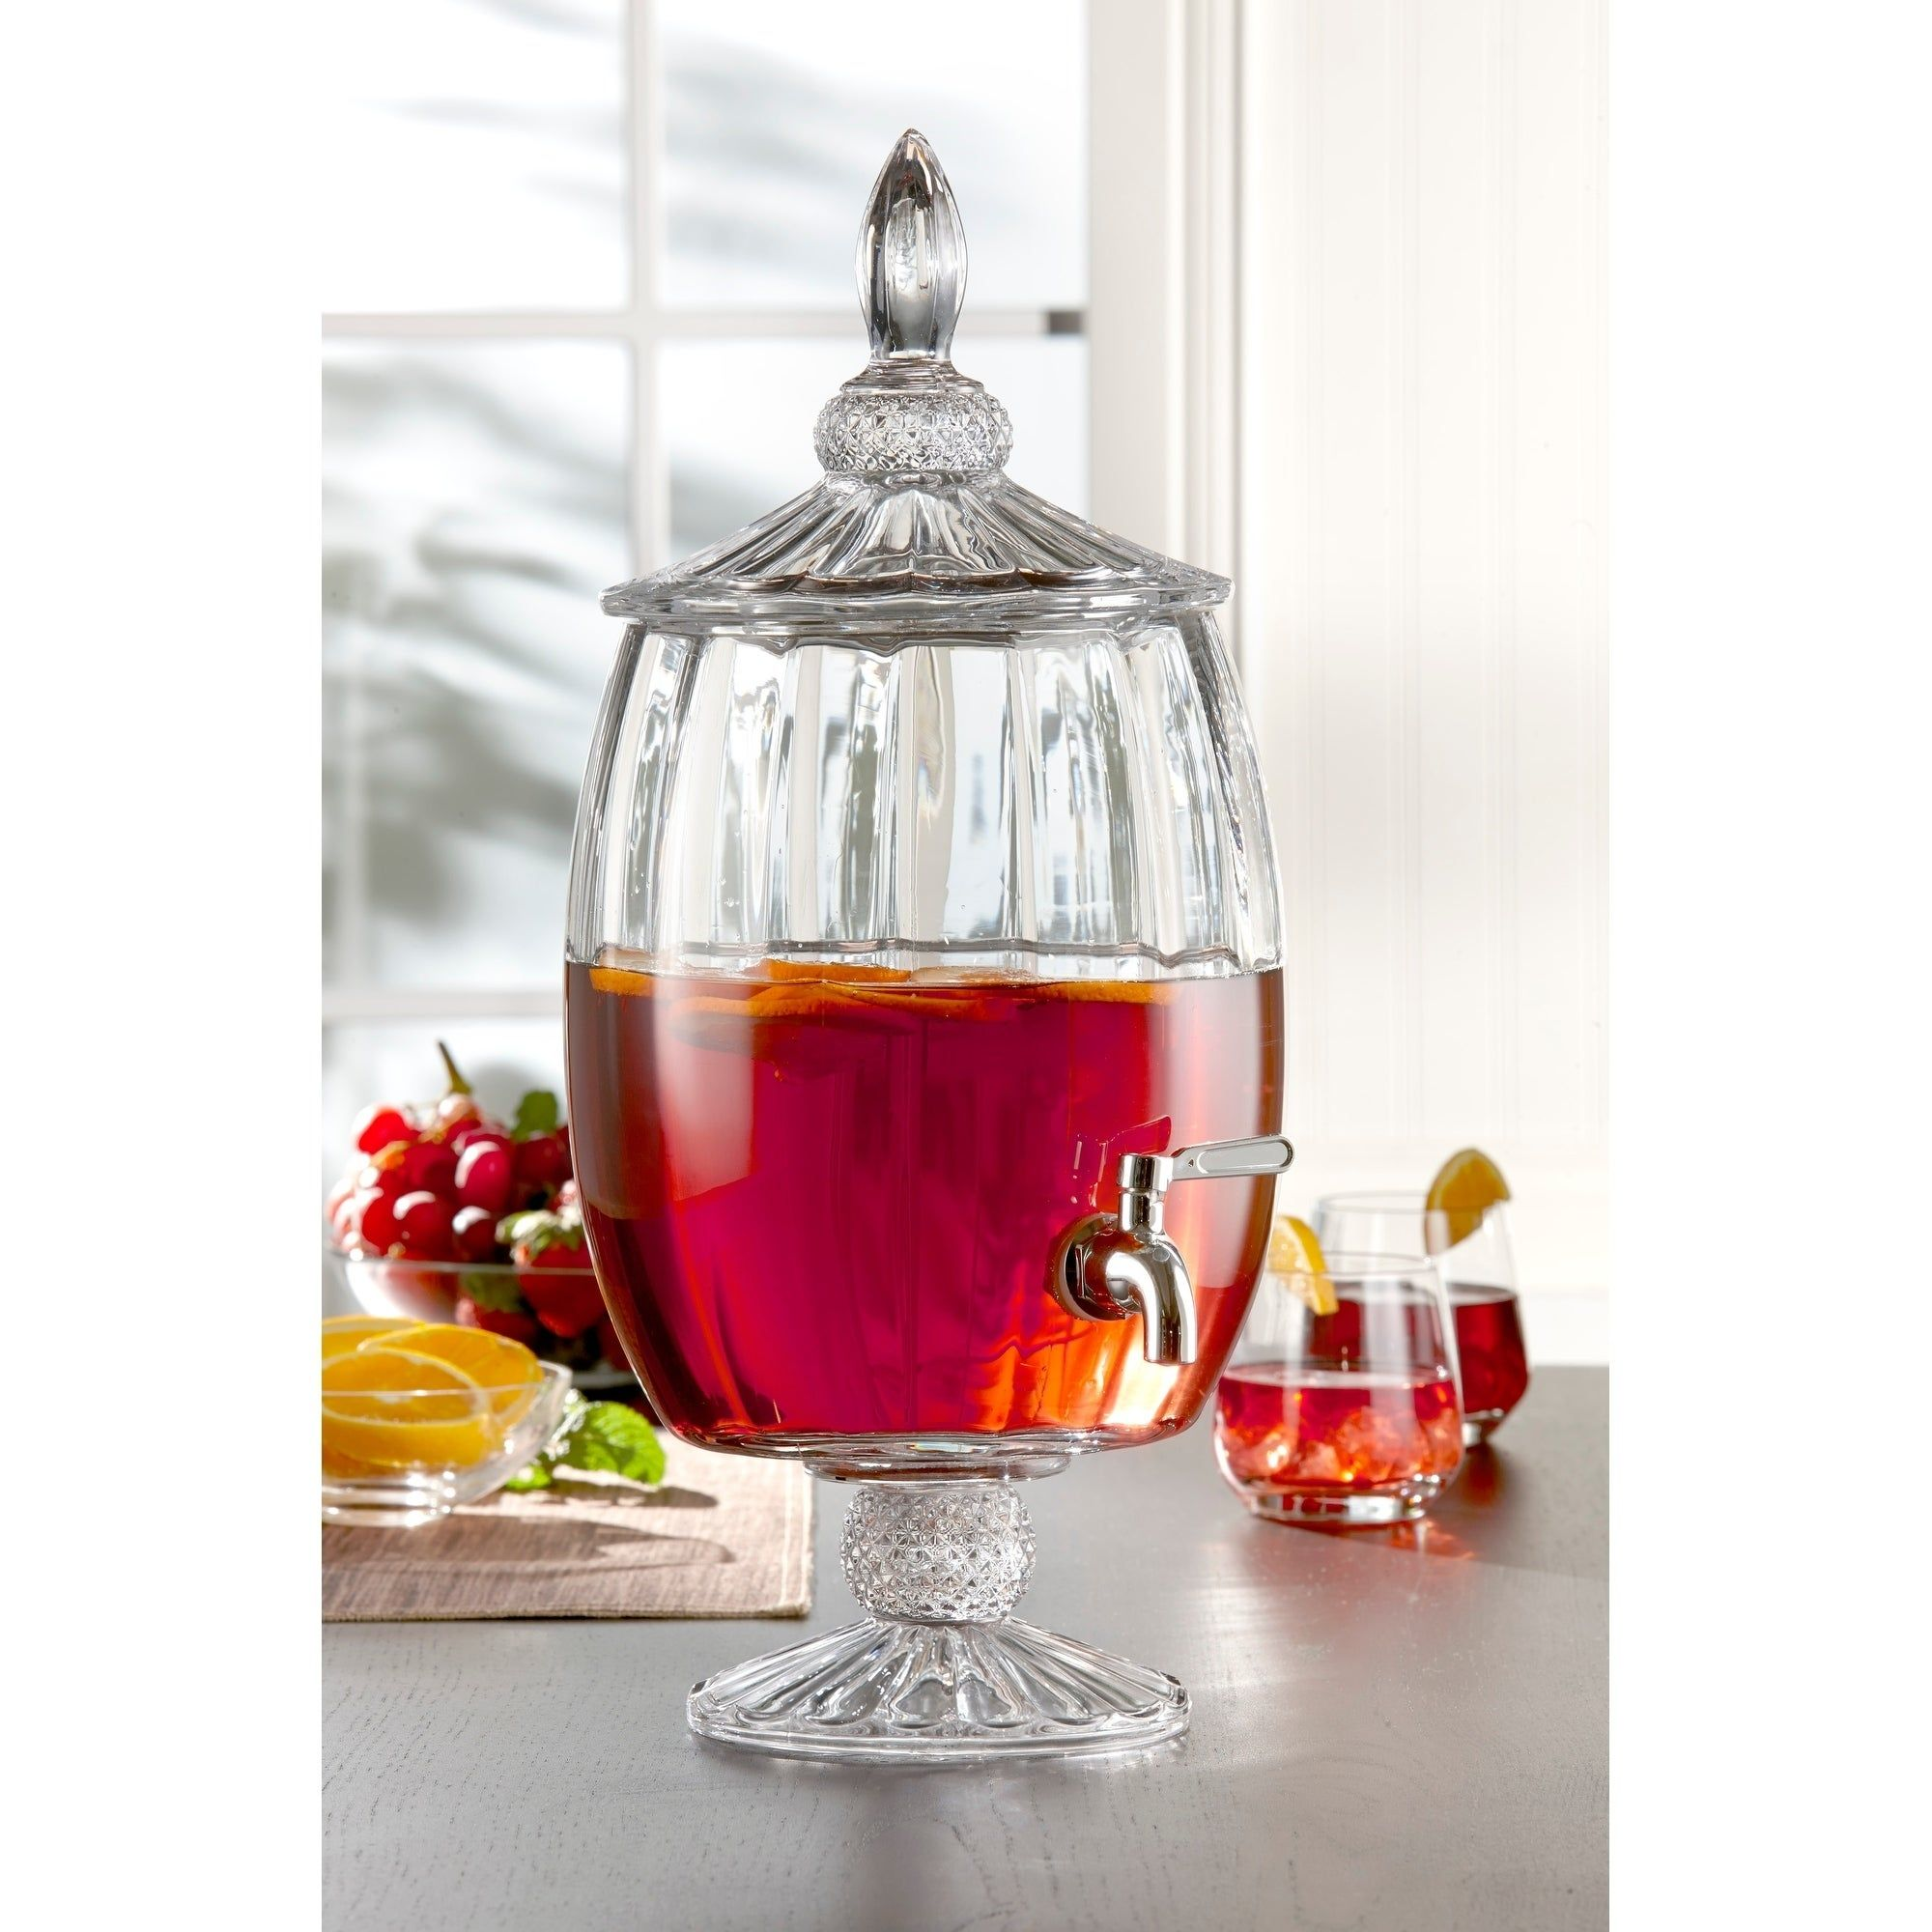 Fifth Avenue Madison Optic Glass Beverage Dispenser Cold Drink Wine Juice Great For Parties Entertainm Glass Beverage Dispenser Wine Dispenser Drink Dispenser